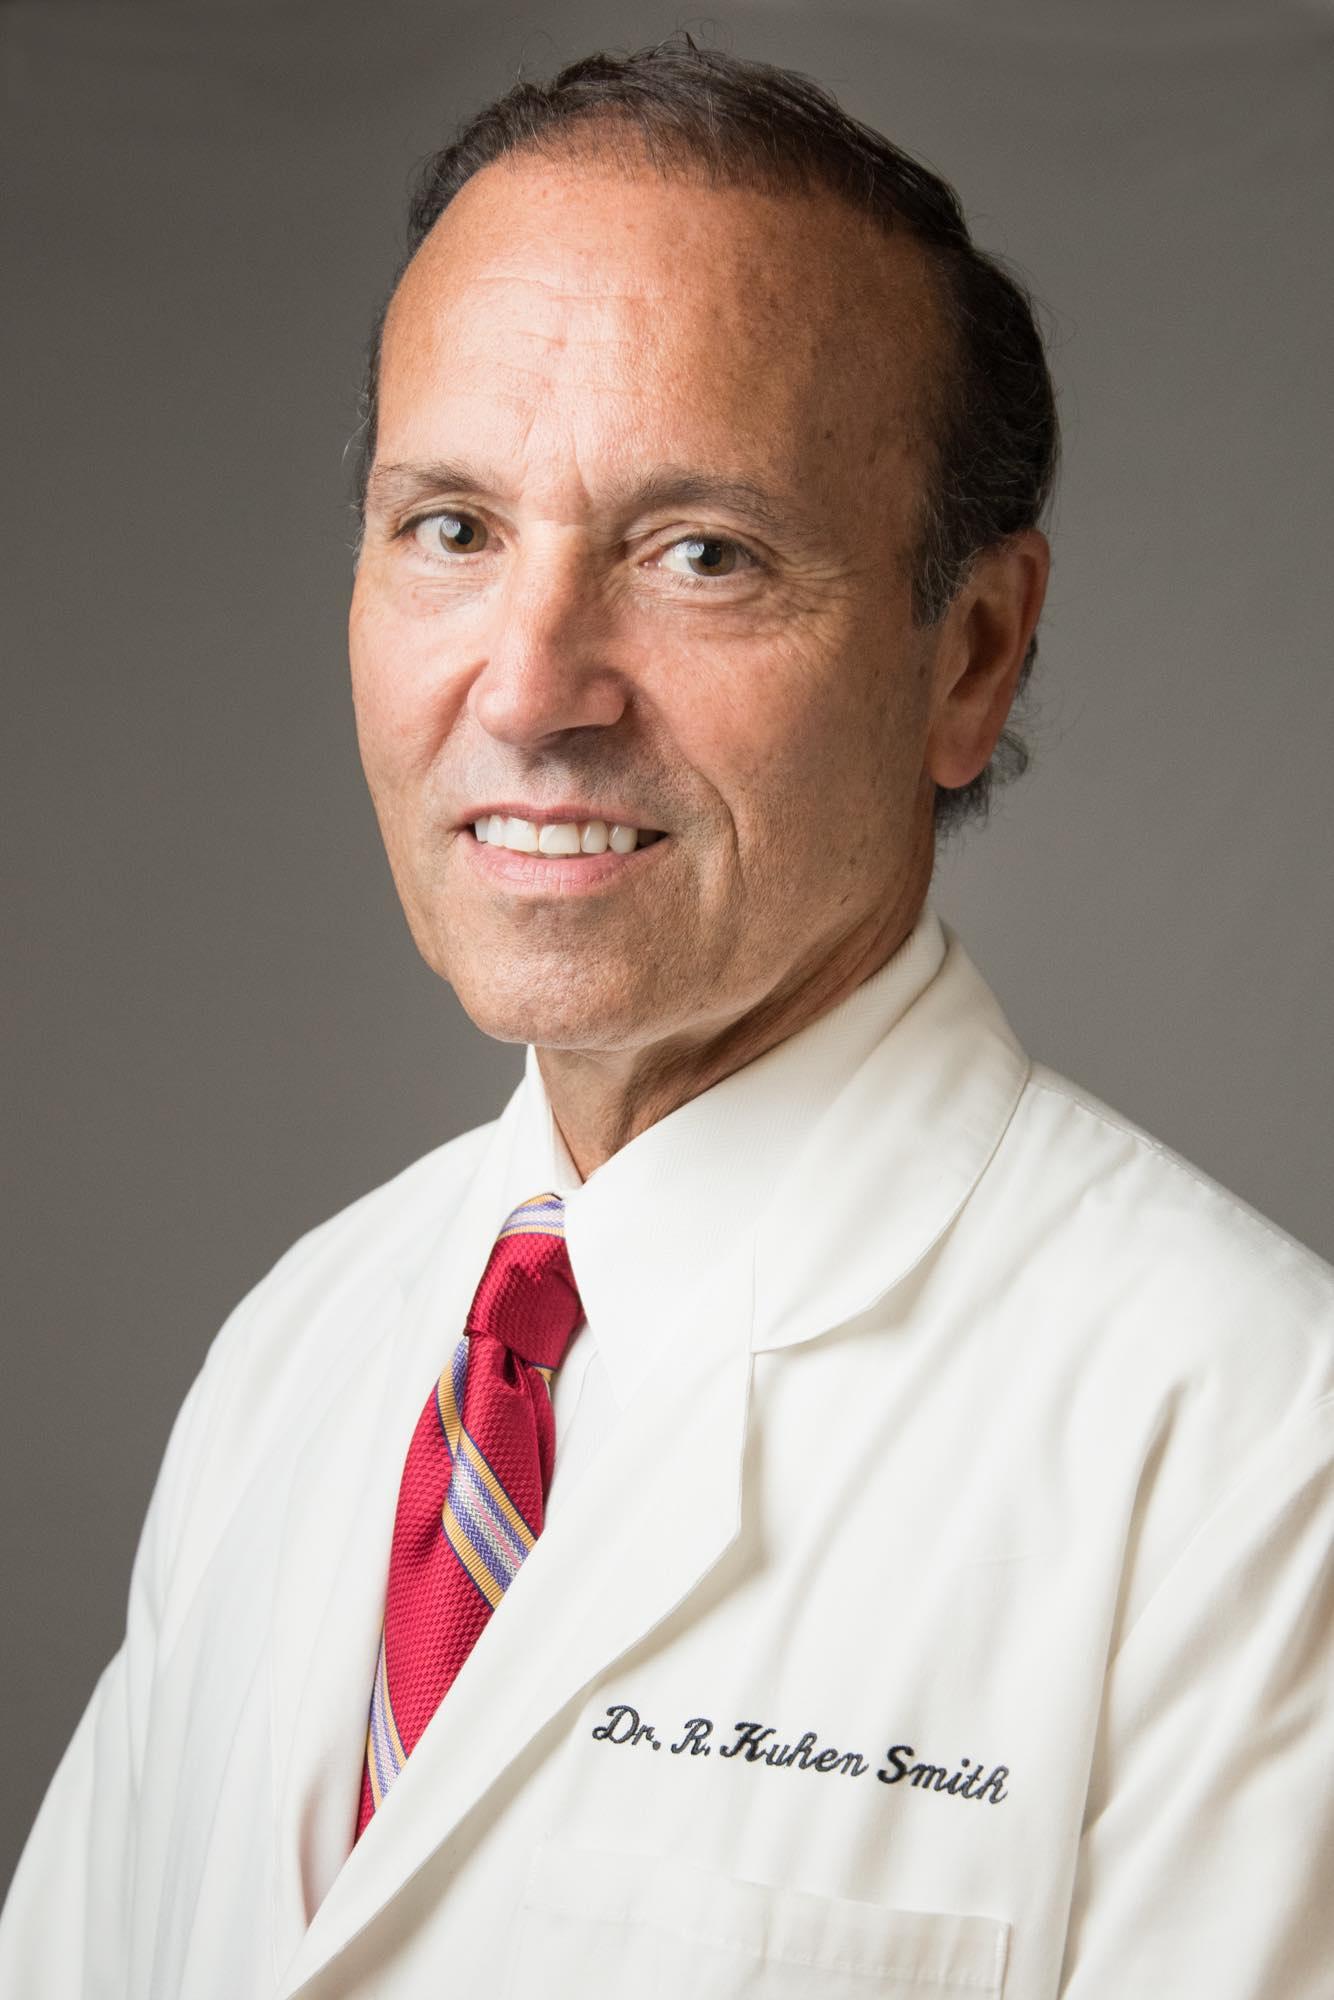 R. Kuhen Smith, DDS